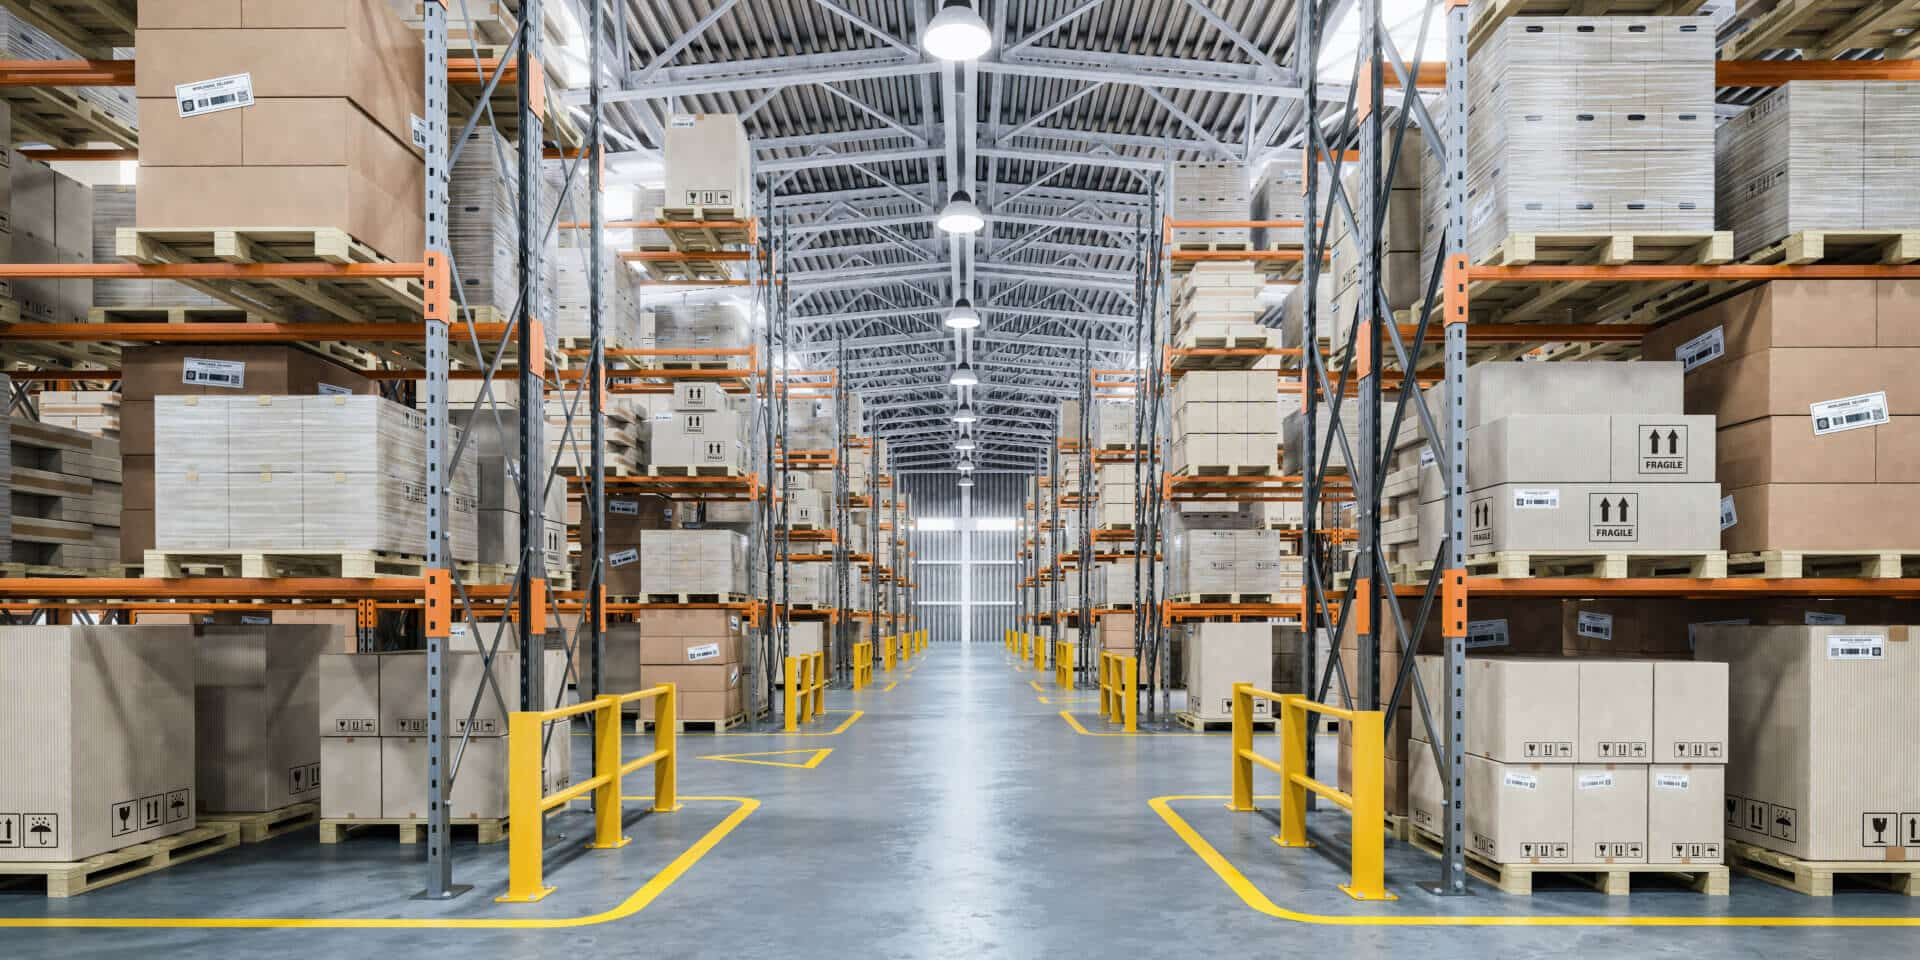 commercial warehouse striping services